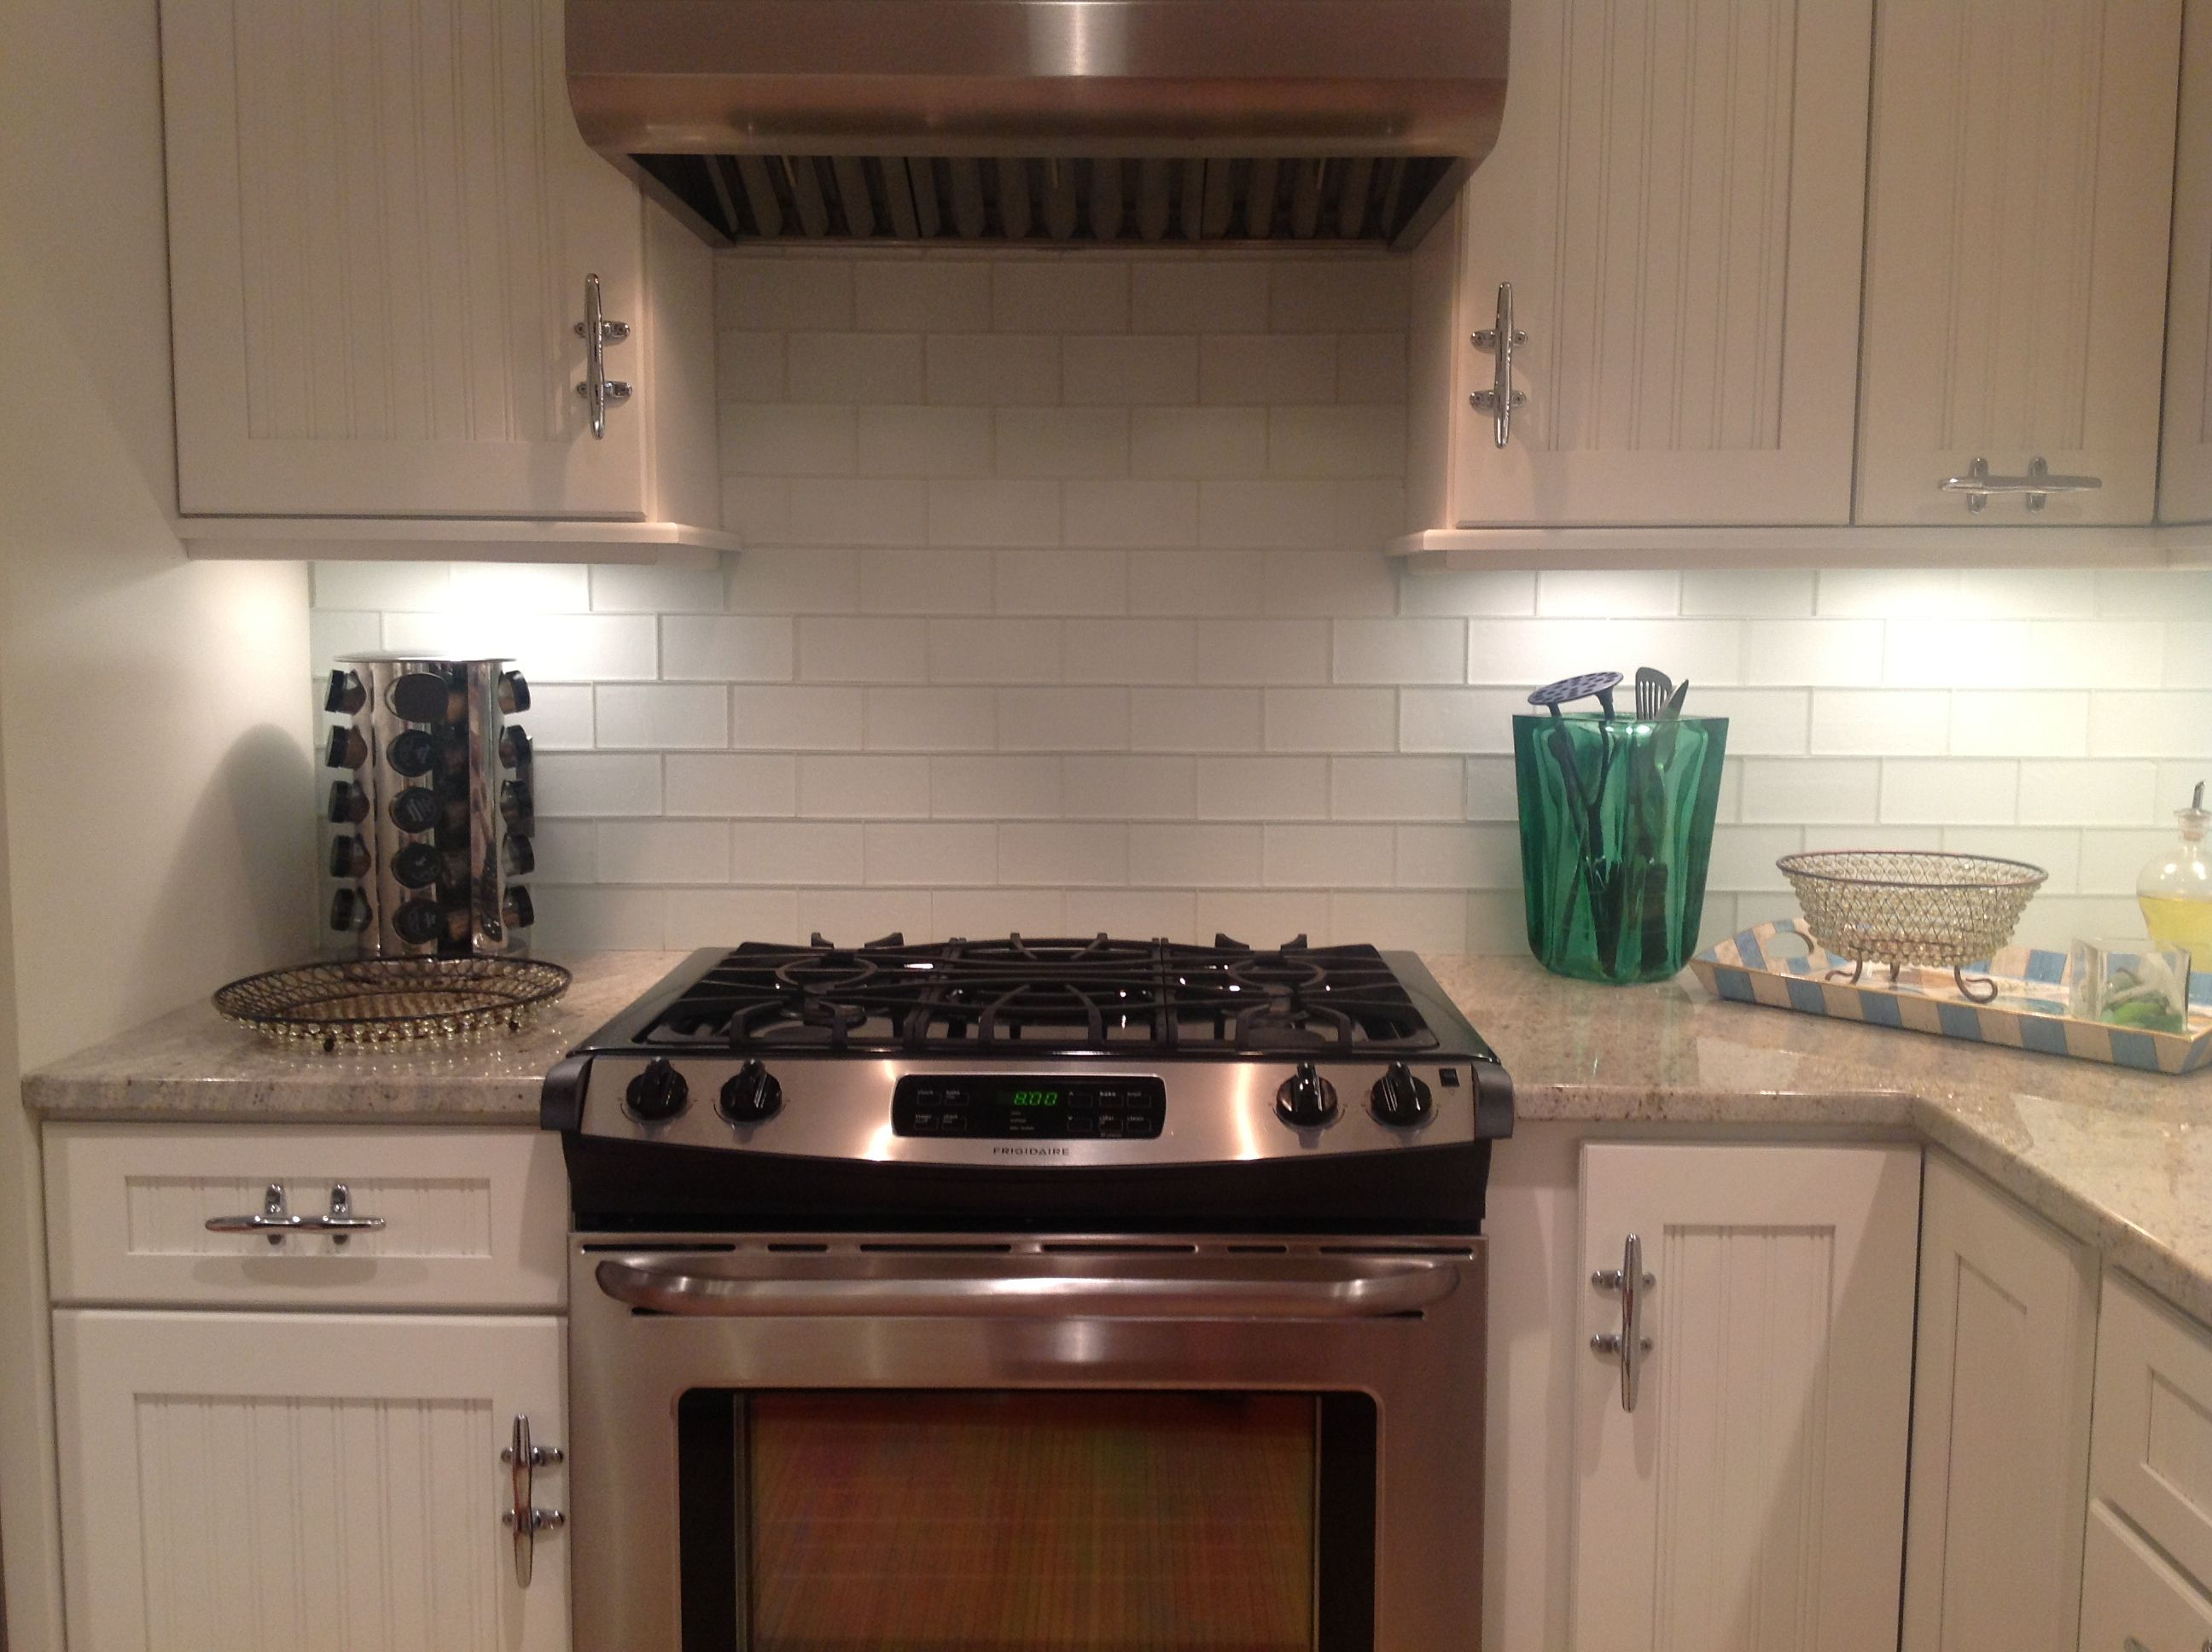 Frosted White Glass Subway Tile Kitchen Backsplash Photos Kitchen Tiles Backsplash Glass Backsplash Kitchen